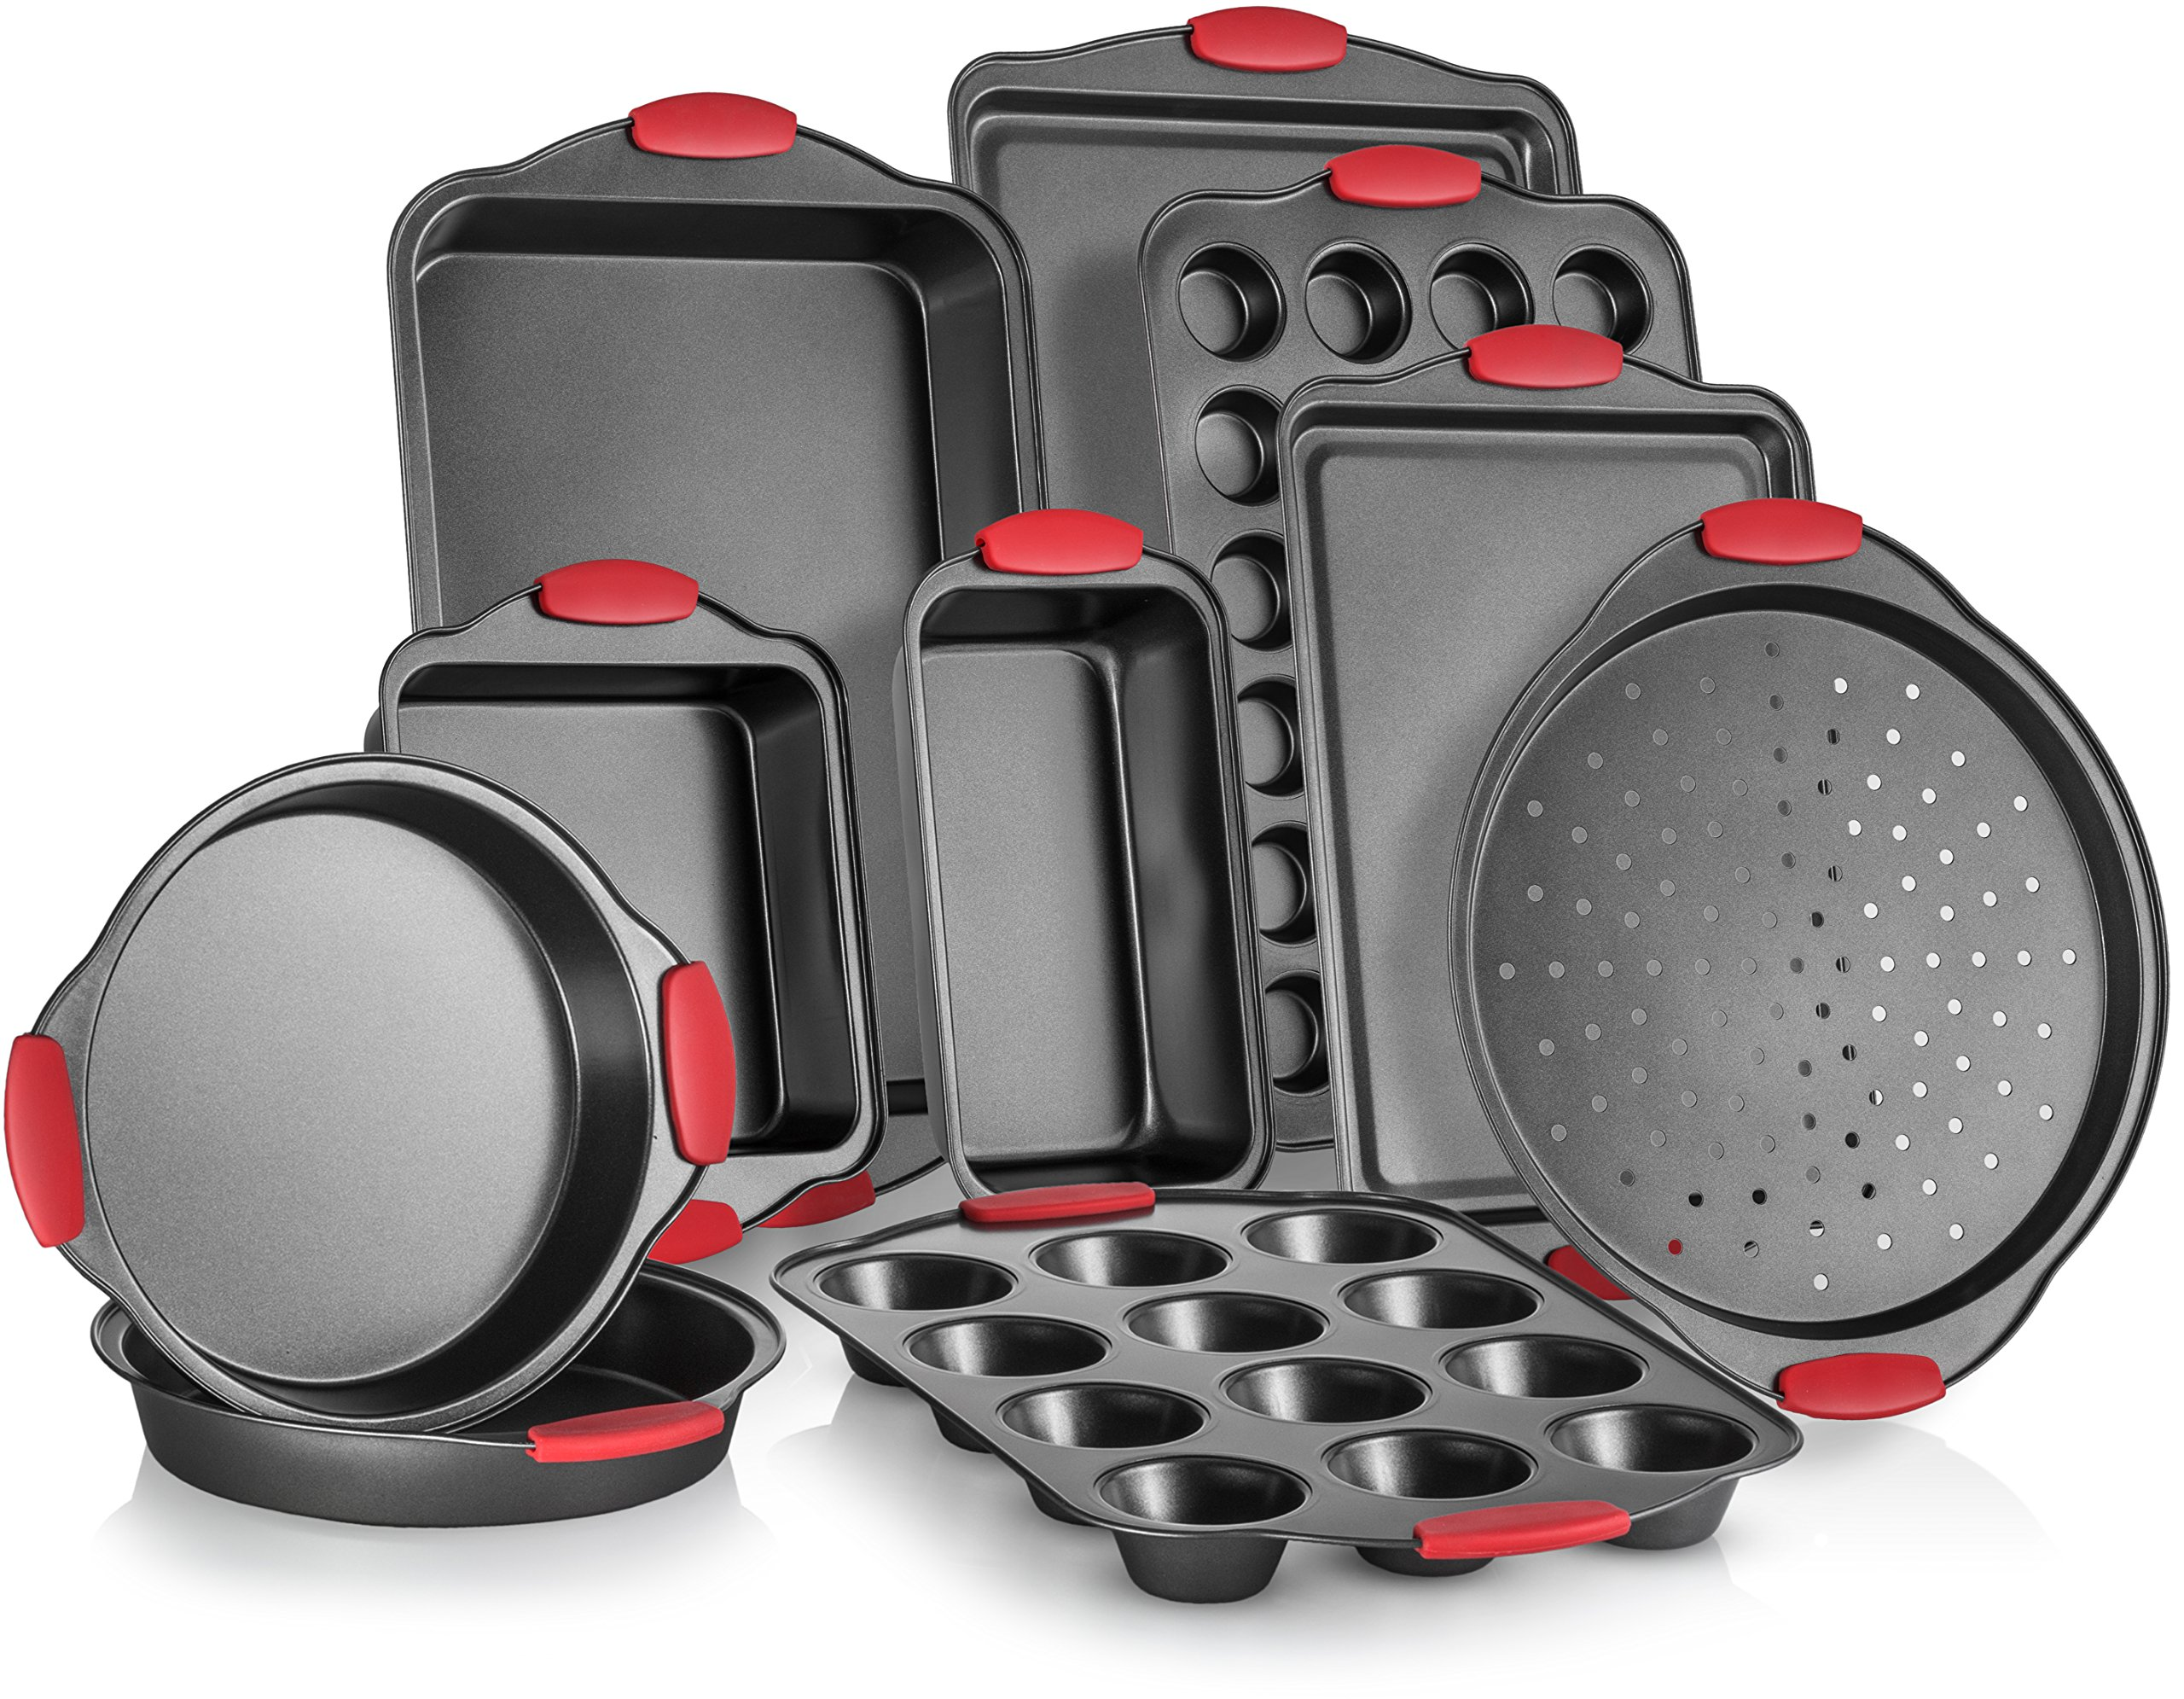 Perlli 10-Piece Nonstick Carbon Steel Bakeware Set With Red Silicone Handles | |Metal, Reusable, Quality Kitchenware For Cooking & Baking Cake Loaf, Muffins &More | Non Stick Kitchen Supplies 91xvA64TLOL